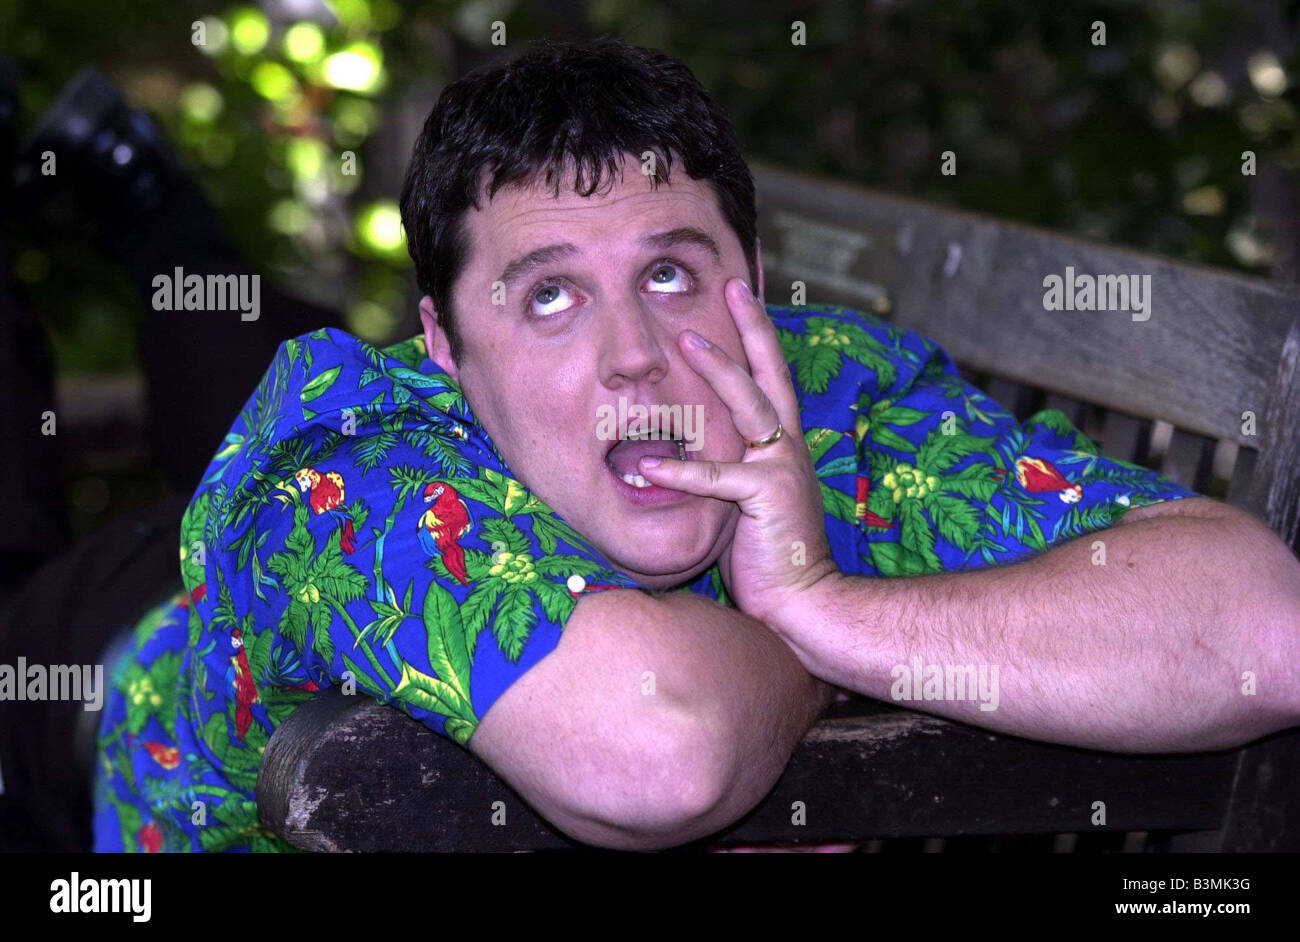 Comedian Peter Kay pictured in London July 2002 Mirrorpix - Stock Image